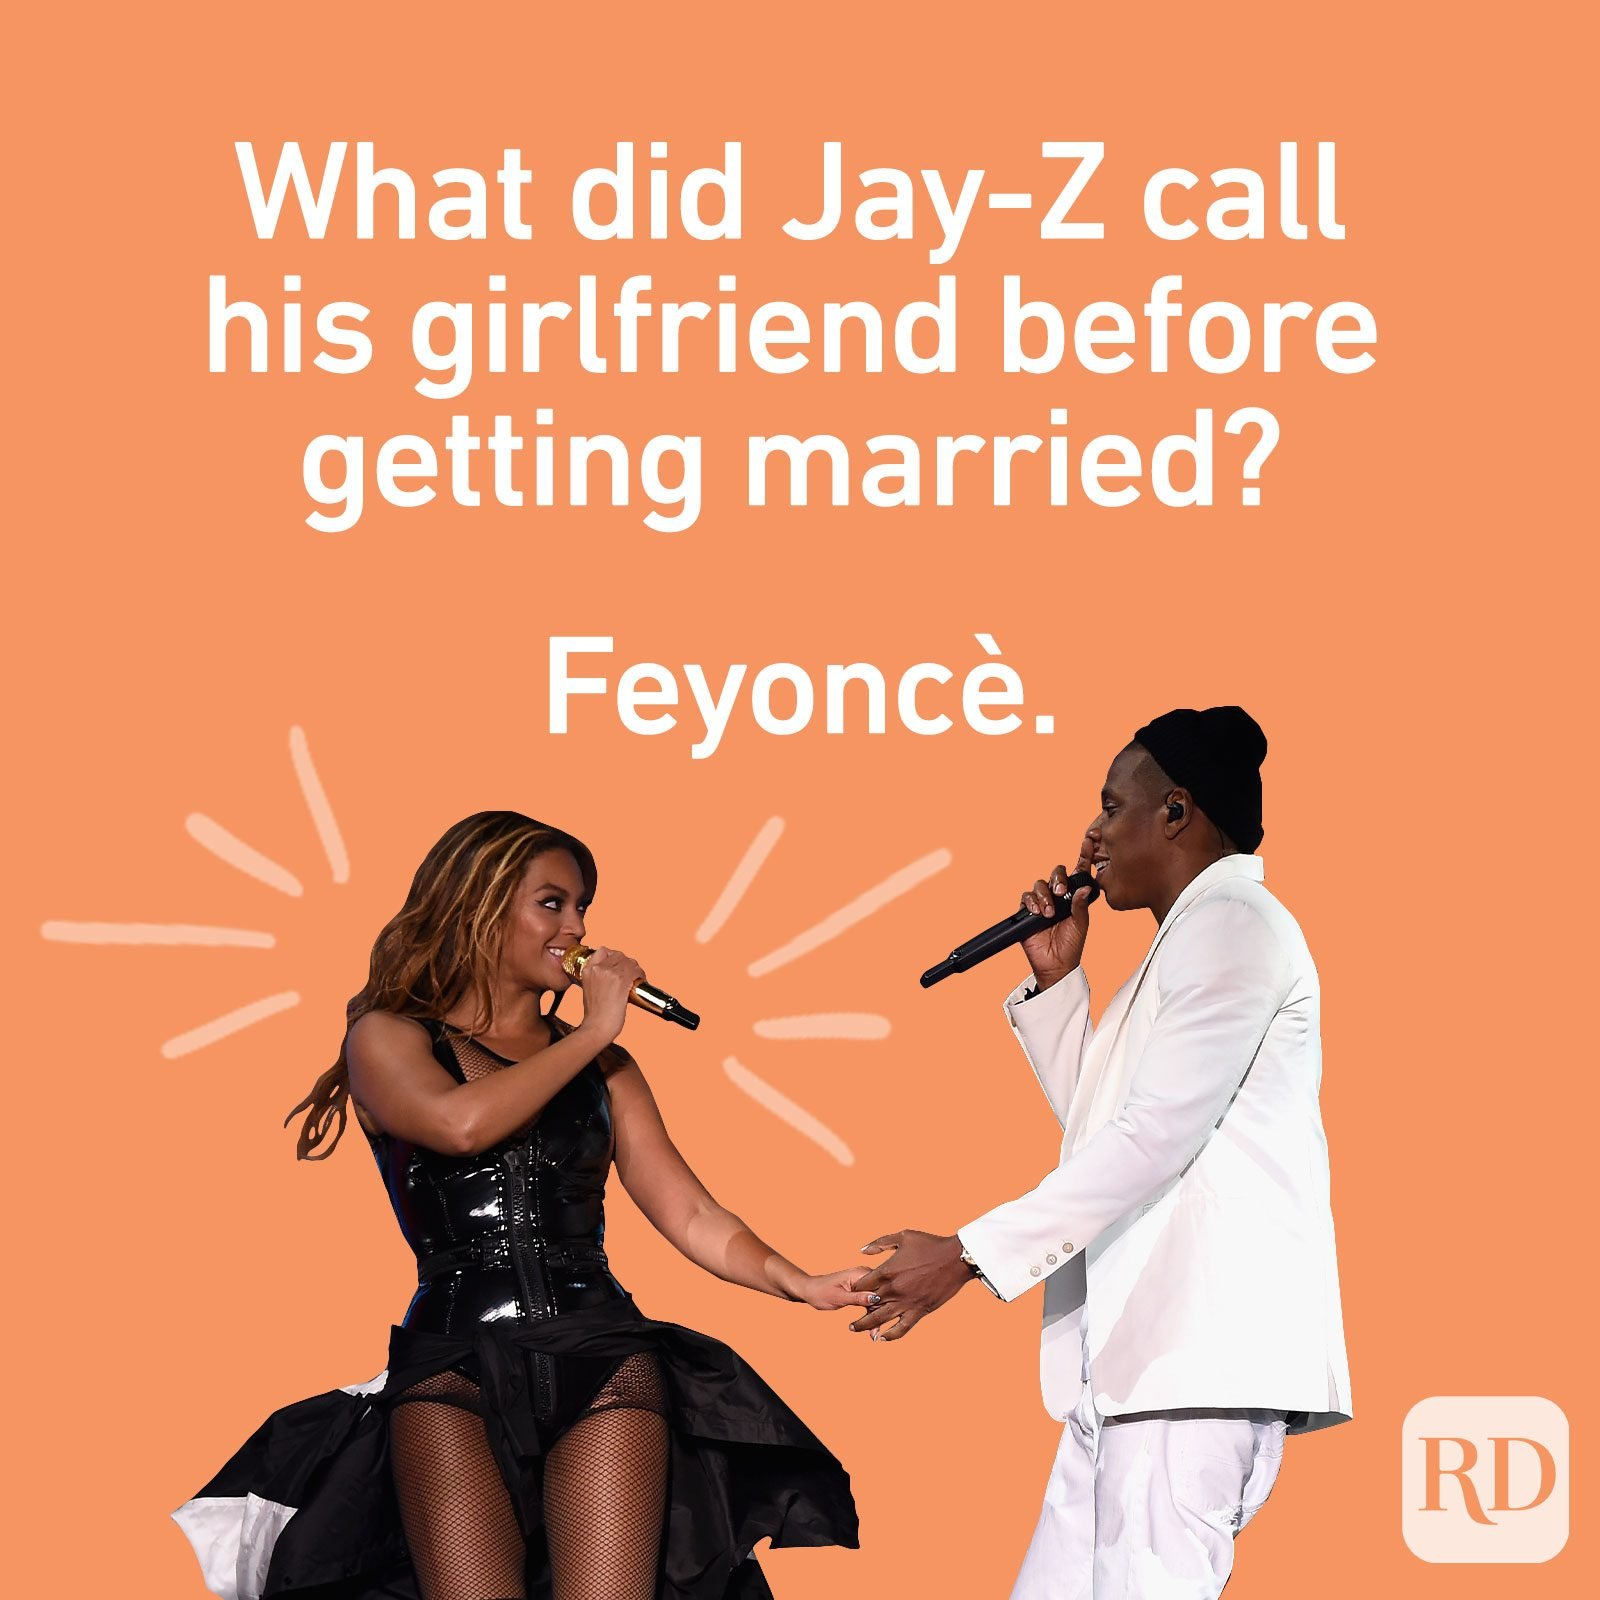 What did Jay-Z call his girlfriend before getting married? Feyoncè.